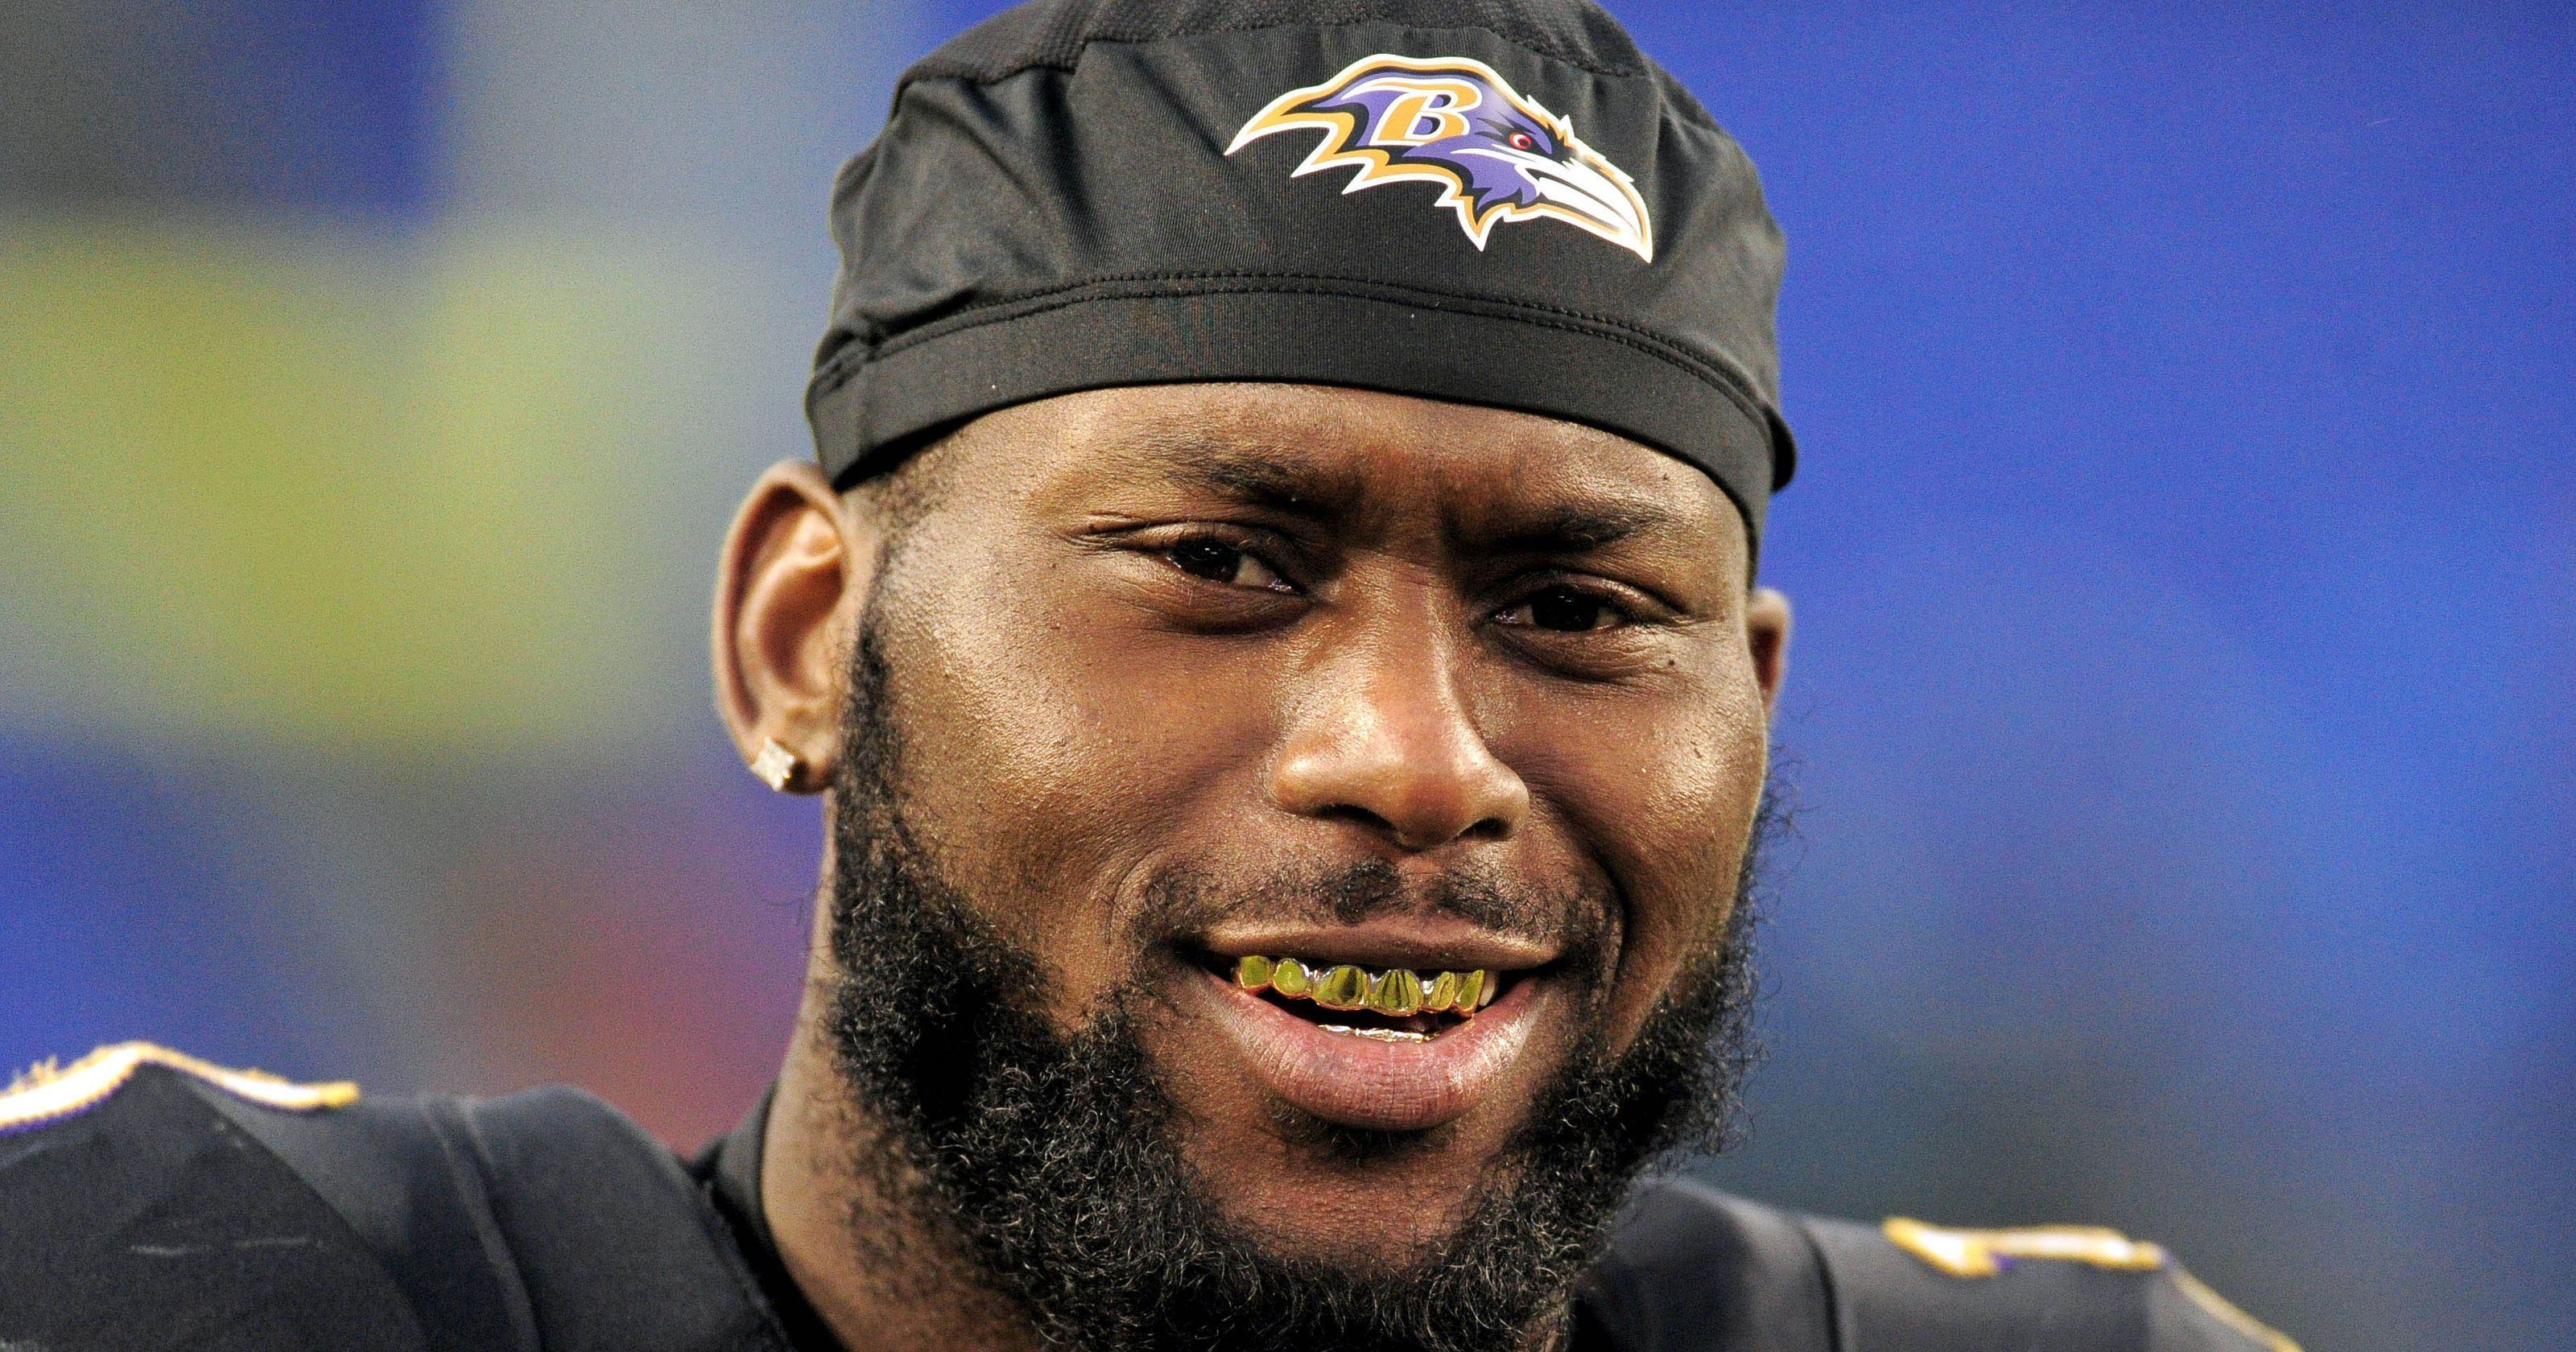 Ex-Ravens S Matt Elam arrested on suspicion of battery, grand theft - USA TODAY